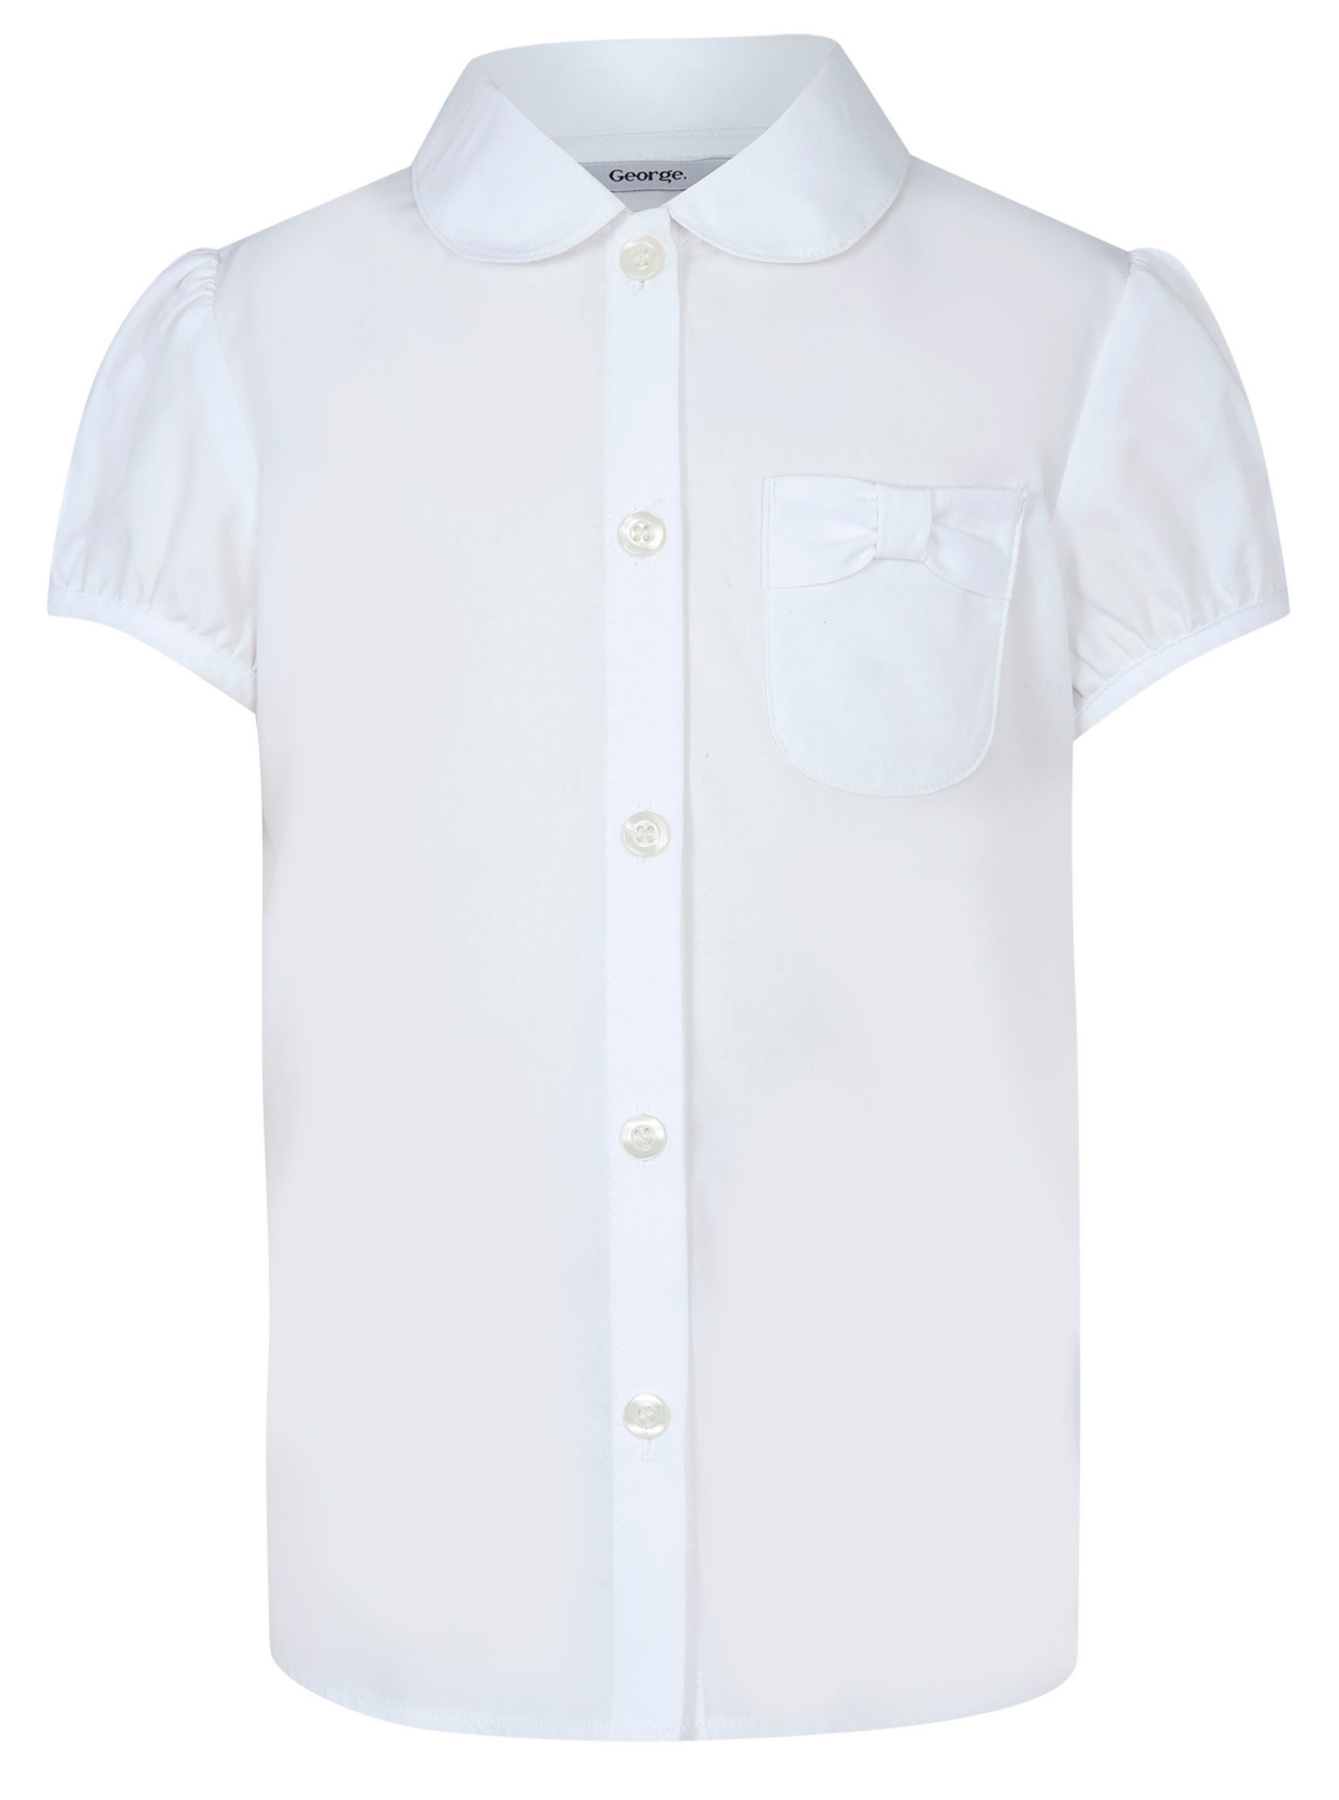 White Blouse George 39